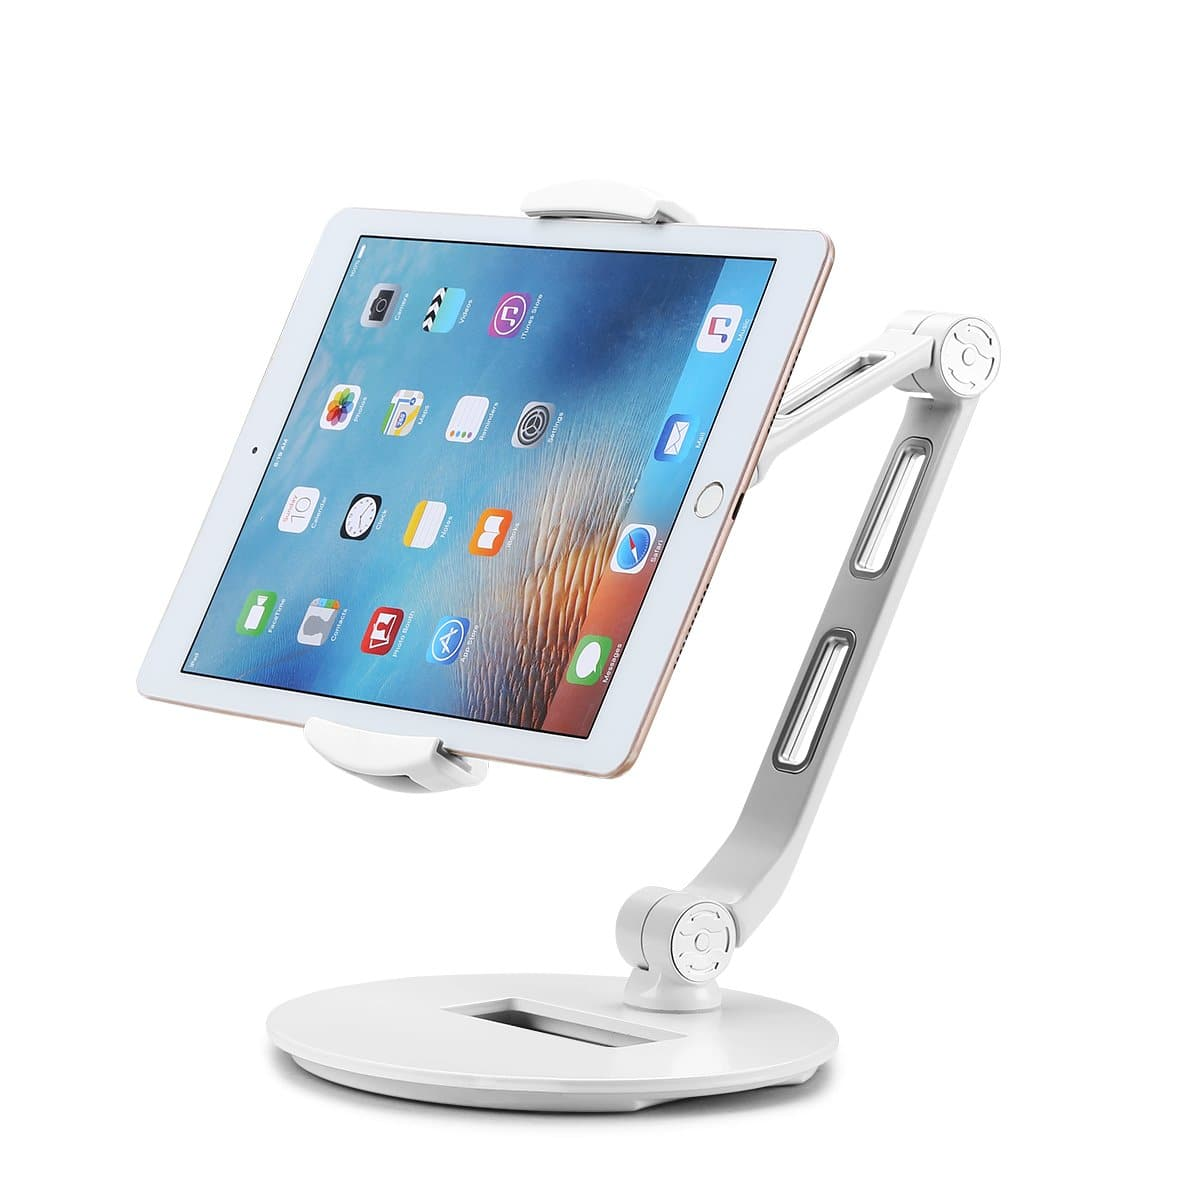 Flexiblle Aluminum Tablet Desk Stand for iPad, iPhone with full 3 axis rotation  $22.99 Amazon